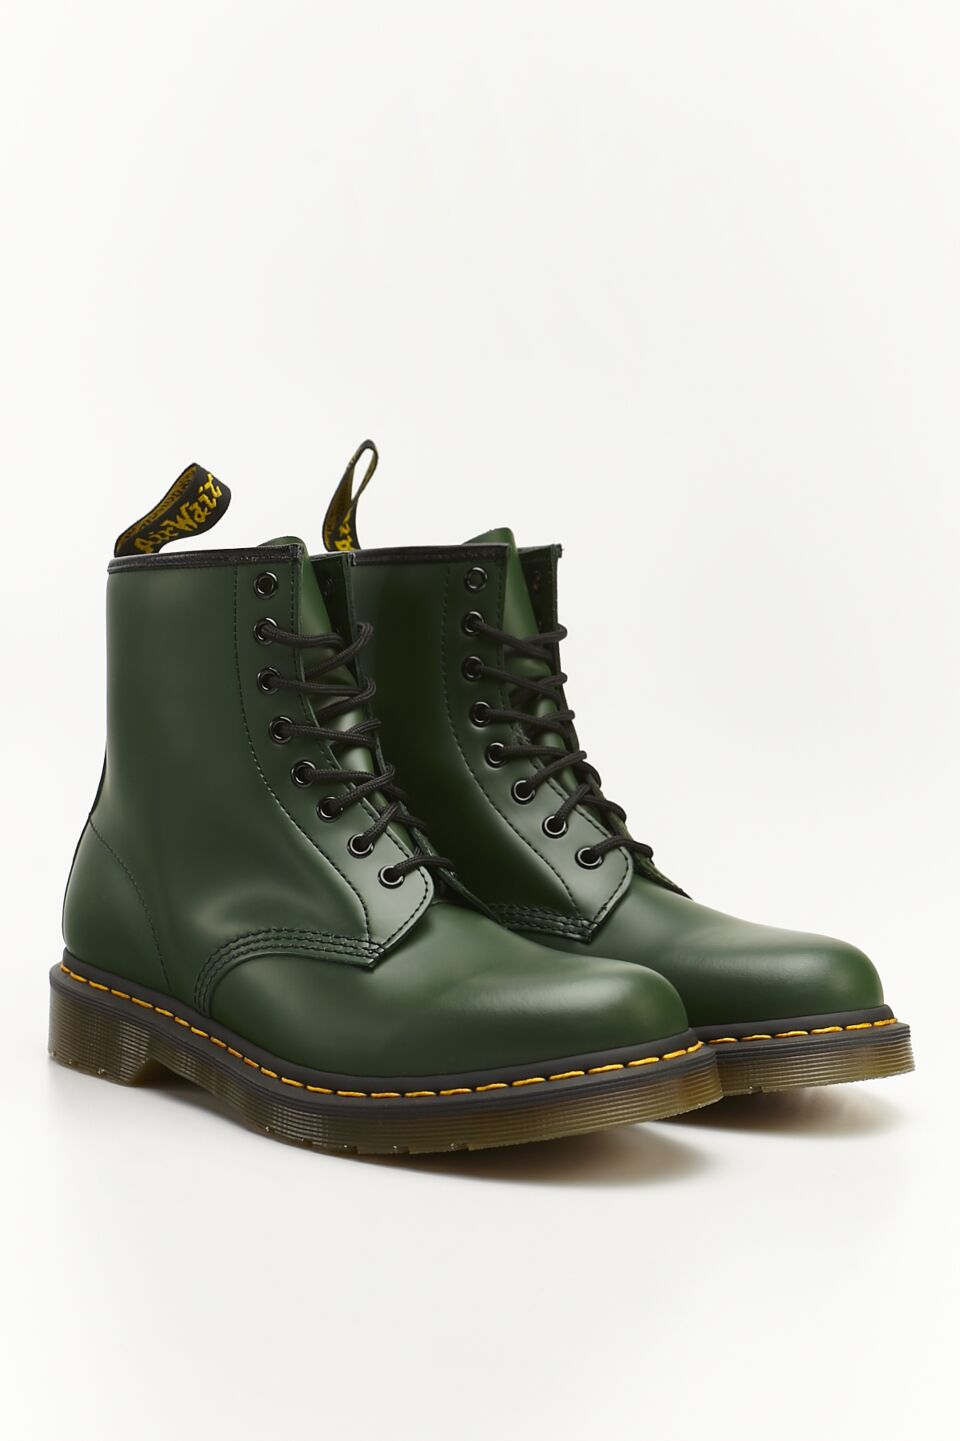 1460 SMOOTH GREEN